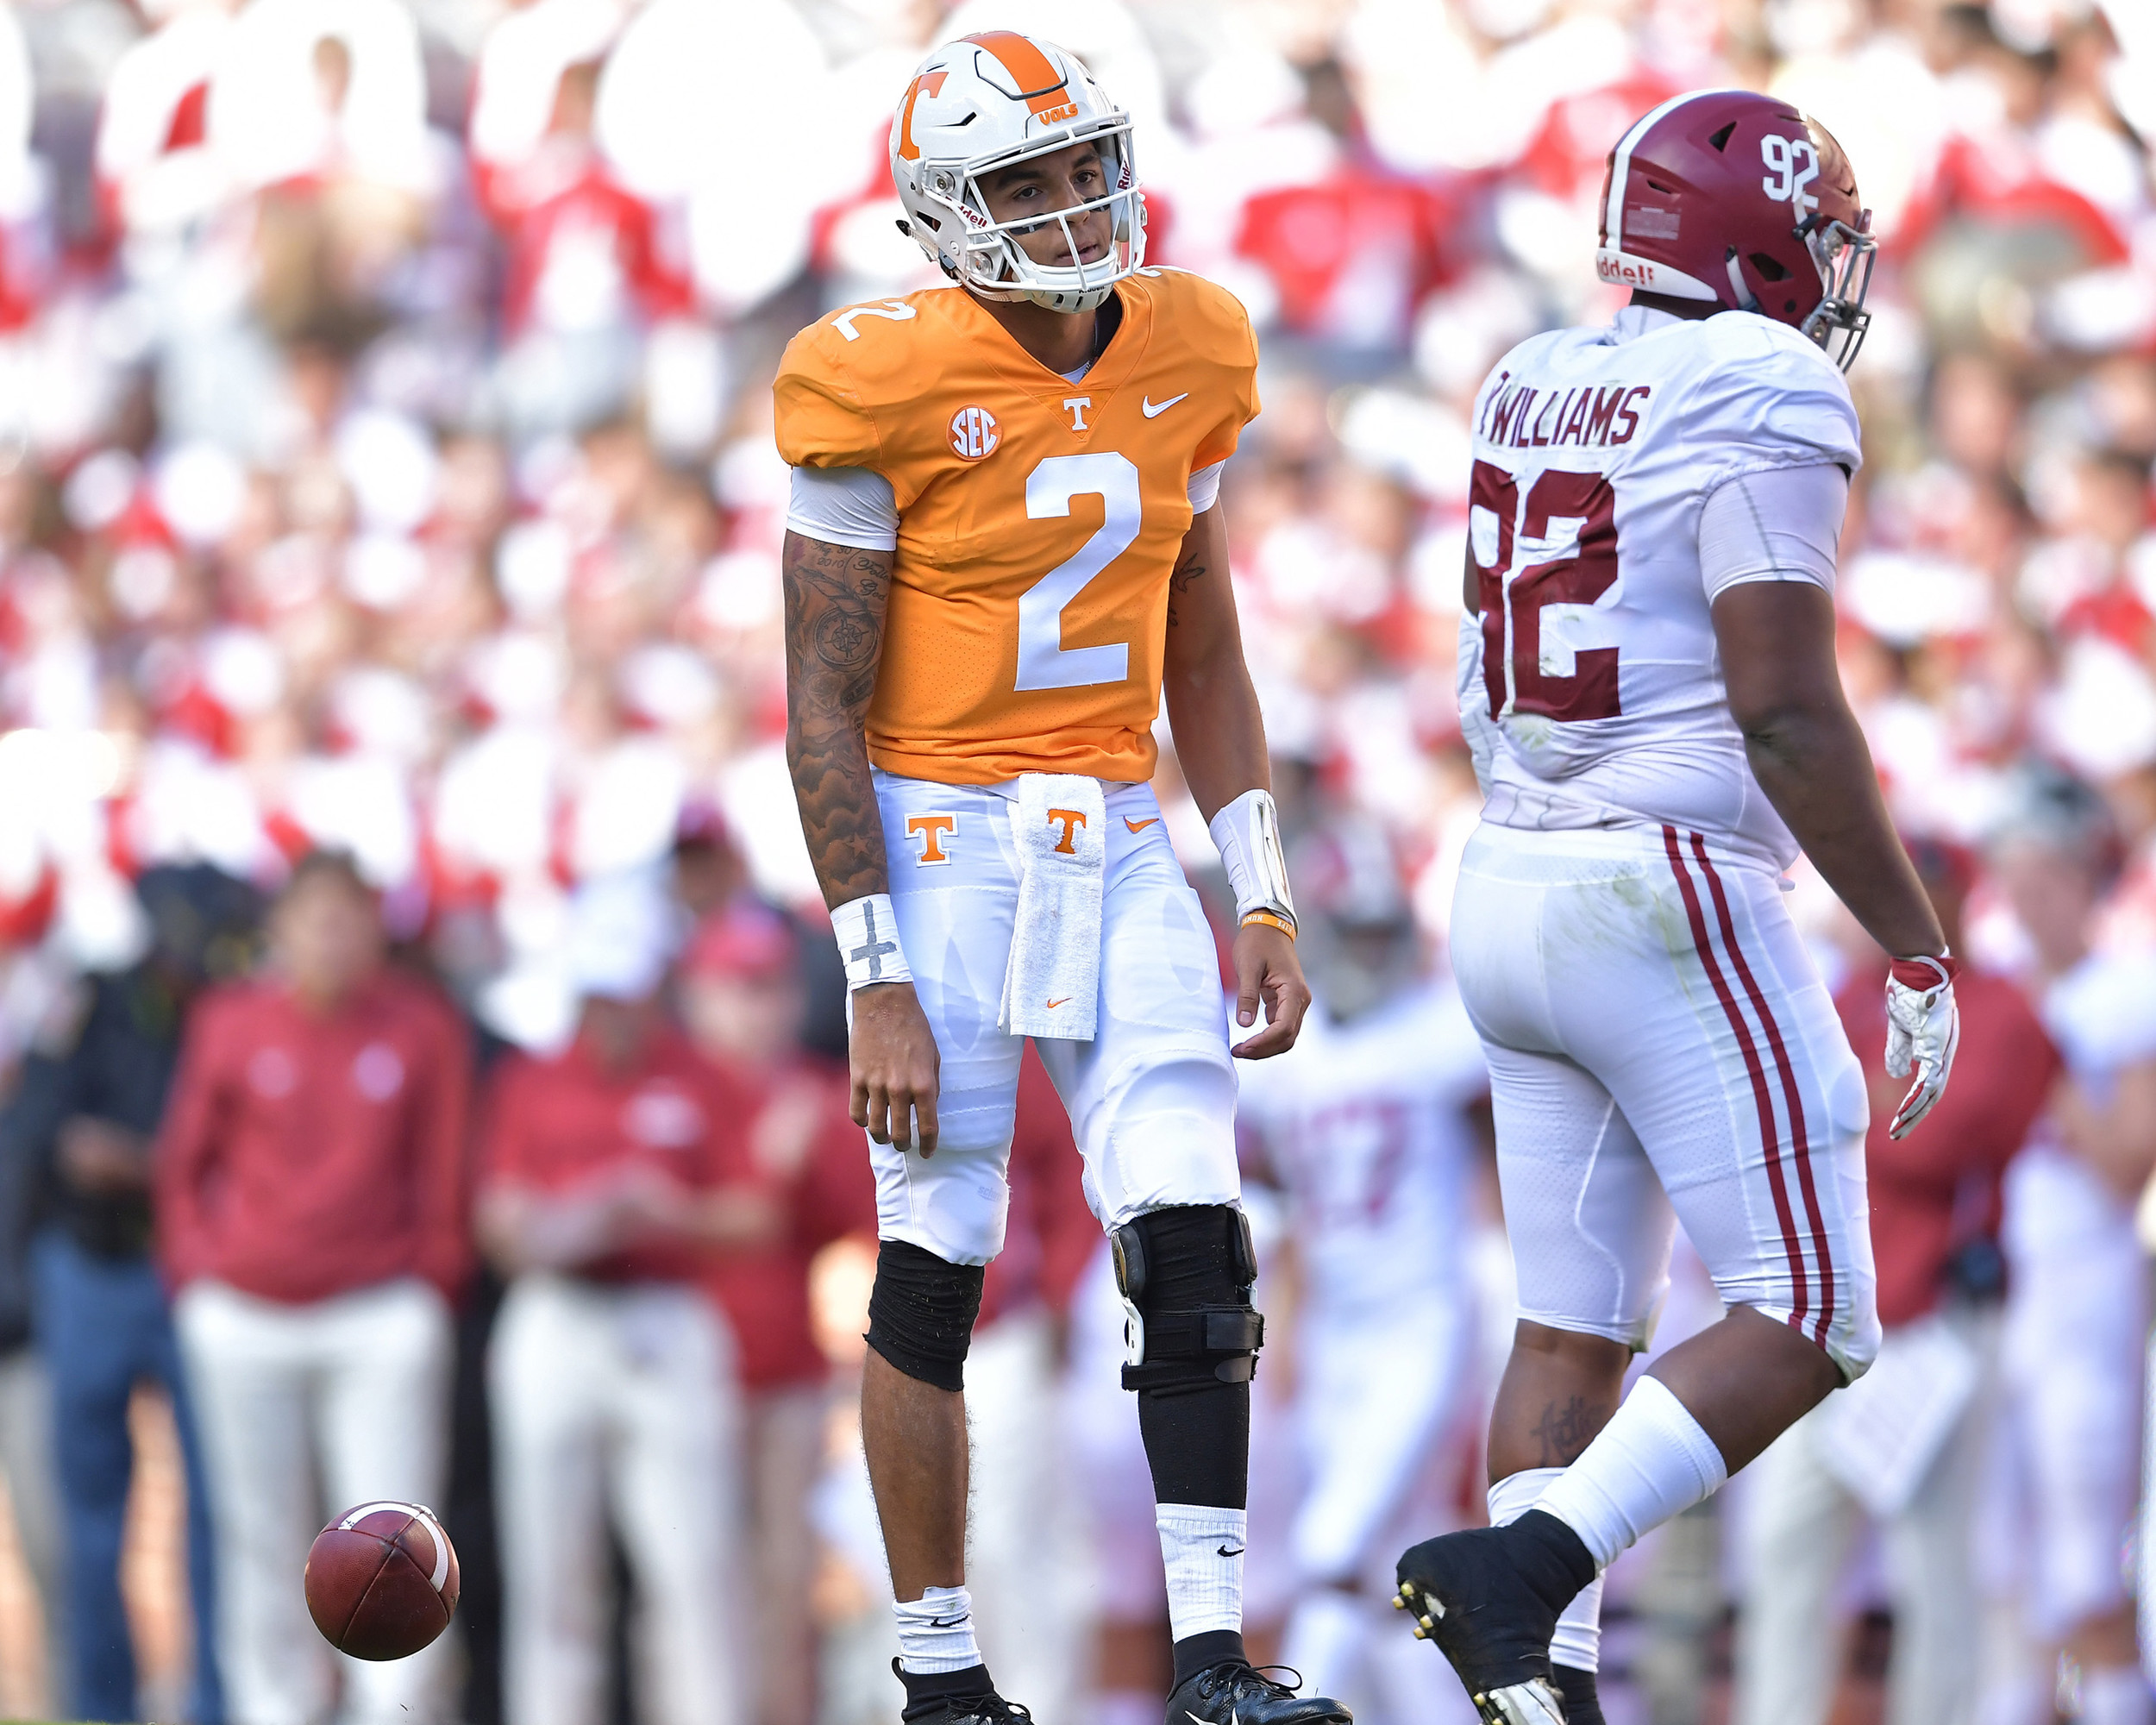 Tennessee Volunteers quarterback Jarrett Guarantano (2) looks dejected after another sack in the first half of the Alabama at Tennessee NCAA football game on Saturday, Oct. 20, 2018, at Neyland Stadium in Knoxville. Tenn. Alabama wins 58-21. (Photo by Lee Walls)